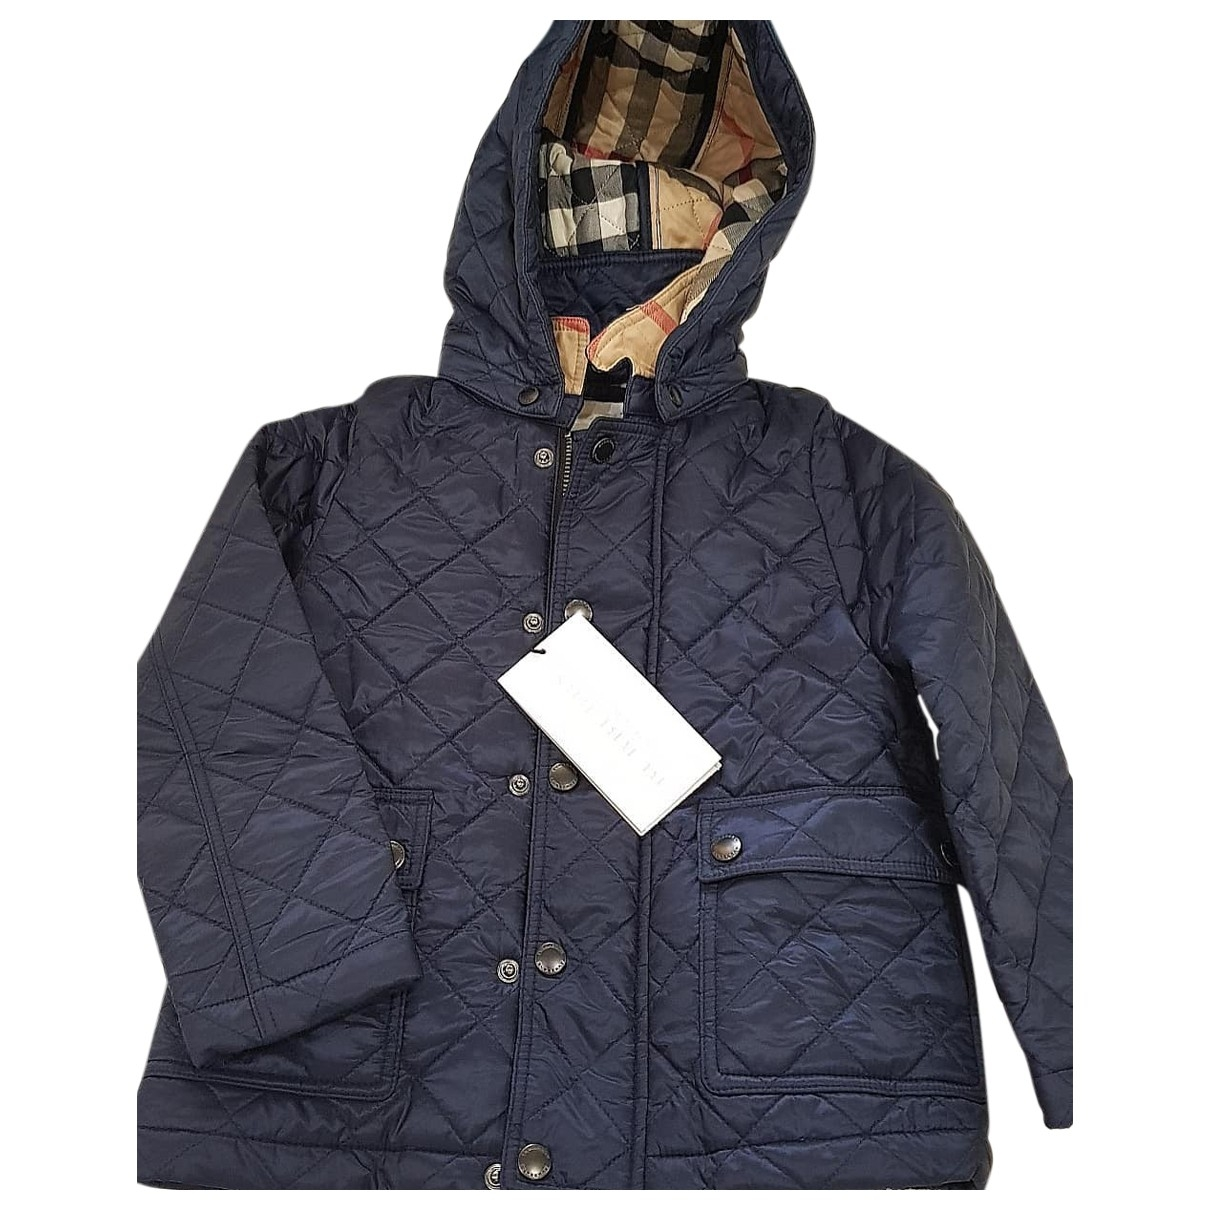 Burberry \N Navy jacket & coat for Kids 3 years - up to 98cm FR